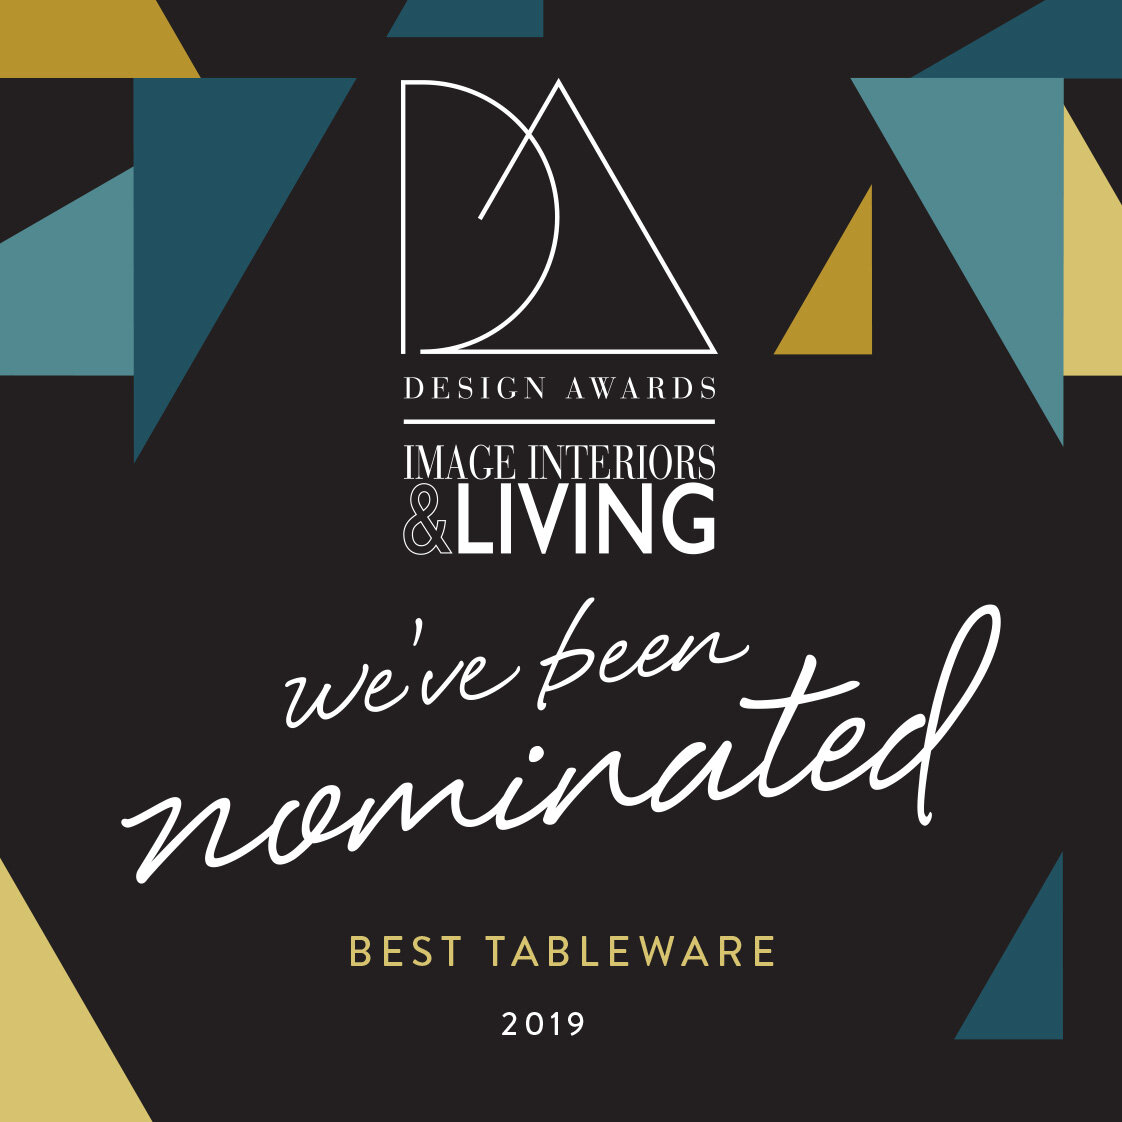 DA we're nominated sticker Tableware 2019 (1).jpg